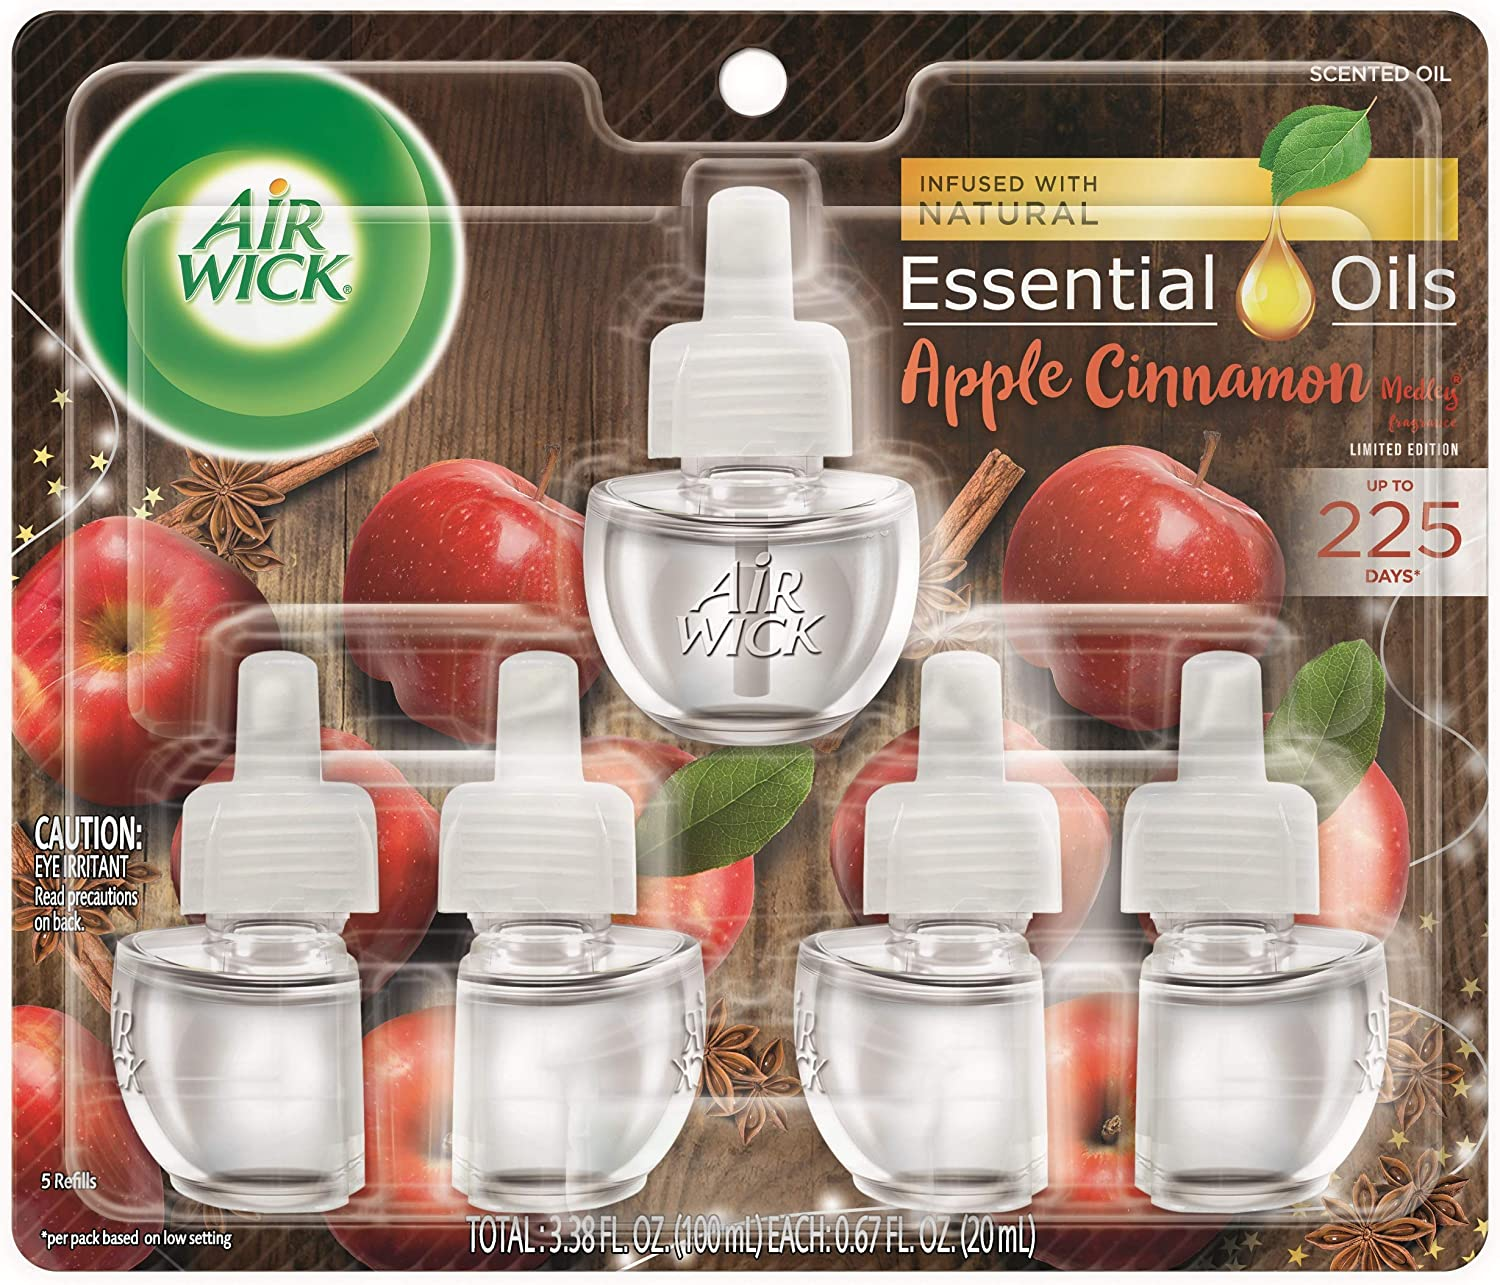 Air Wick plug in Scented Oil 5 Refills, Apple Cinnamon Medley, (0.67 Ounce (Pack of 5)), Essential Oils, Air Freshener